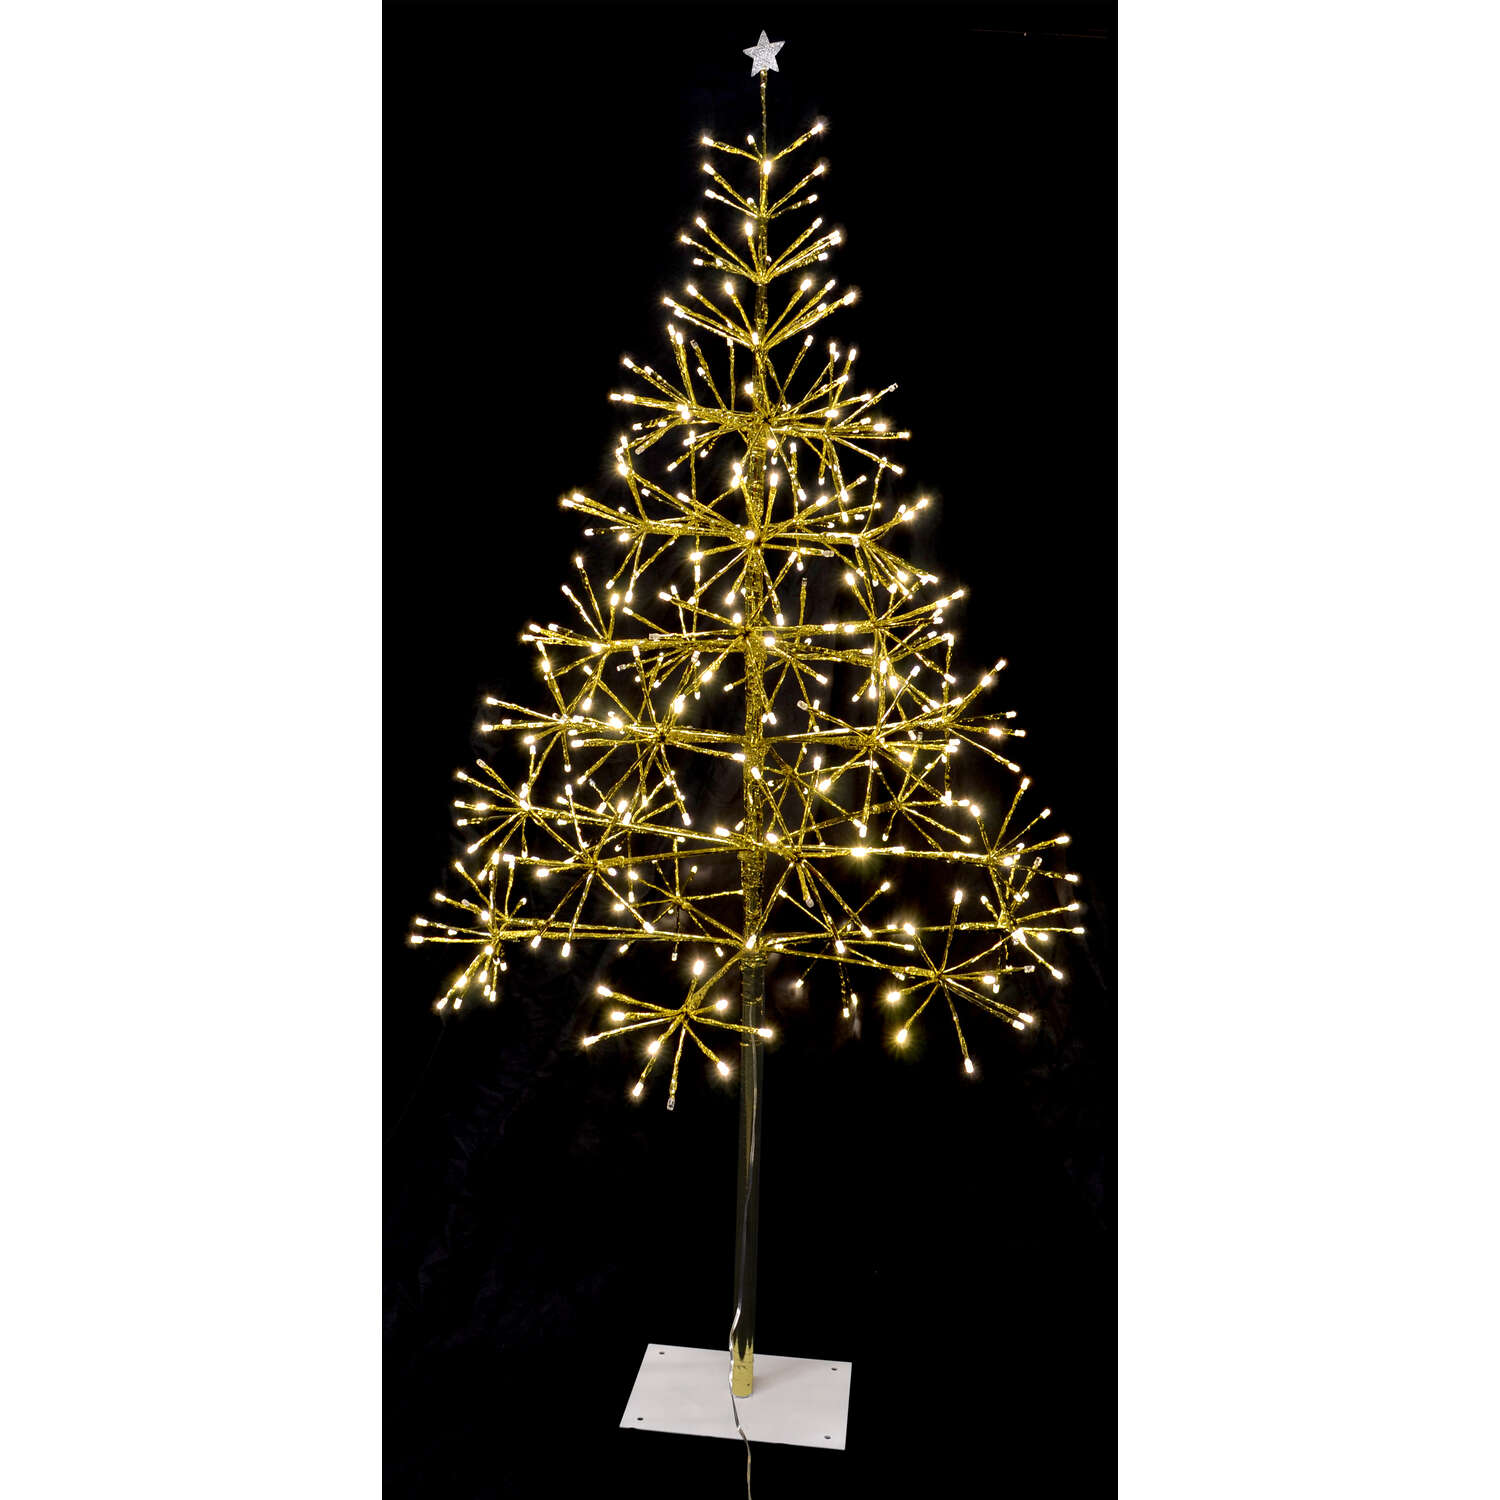 Celebrations  Light Burst Twinkle Tree  Yard Decor